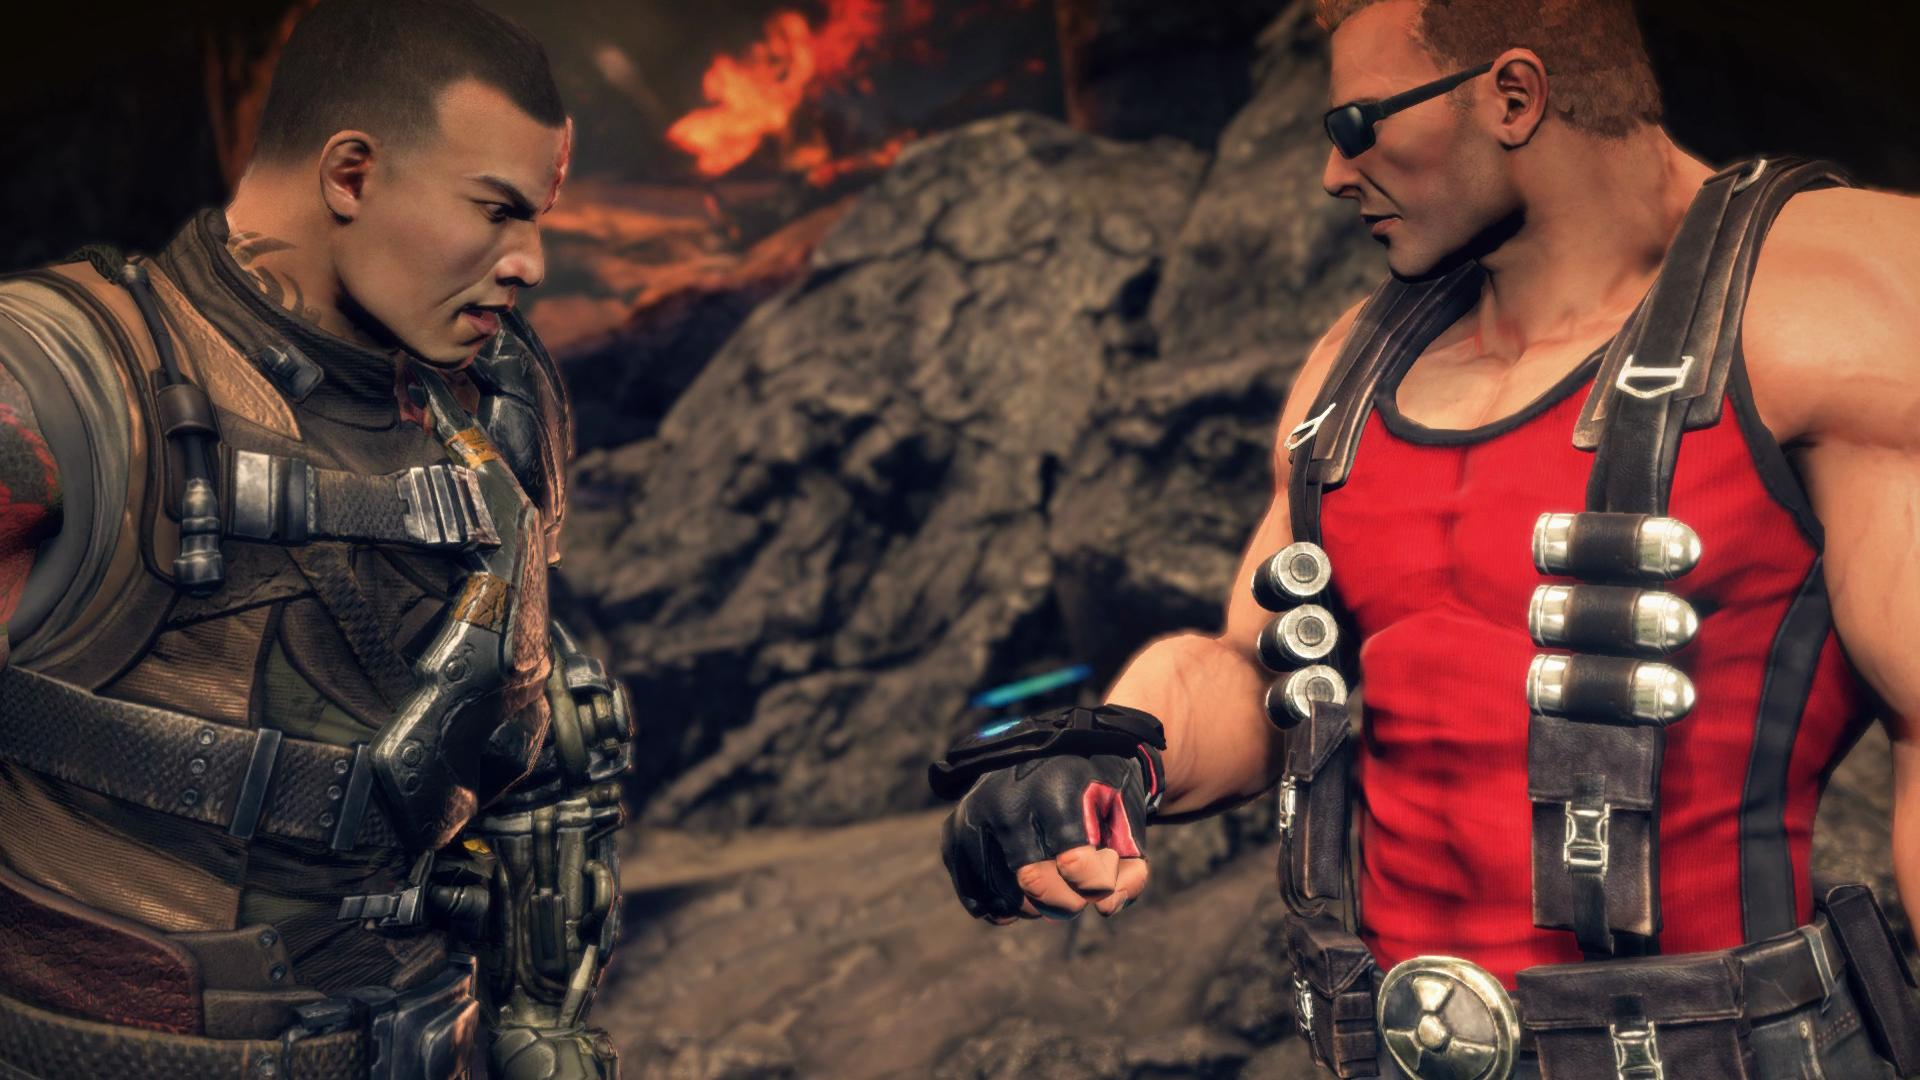 Gearbox teasing Duke Nukem or Bulletstorm game - Sato and Duke Nukem